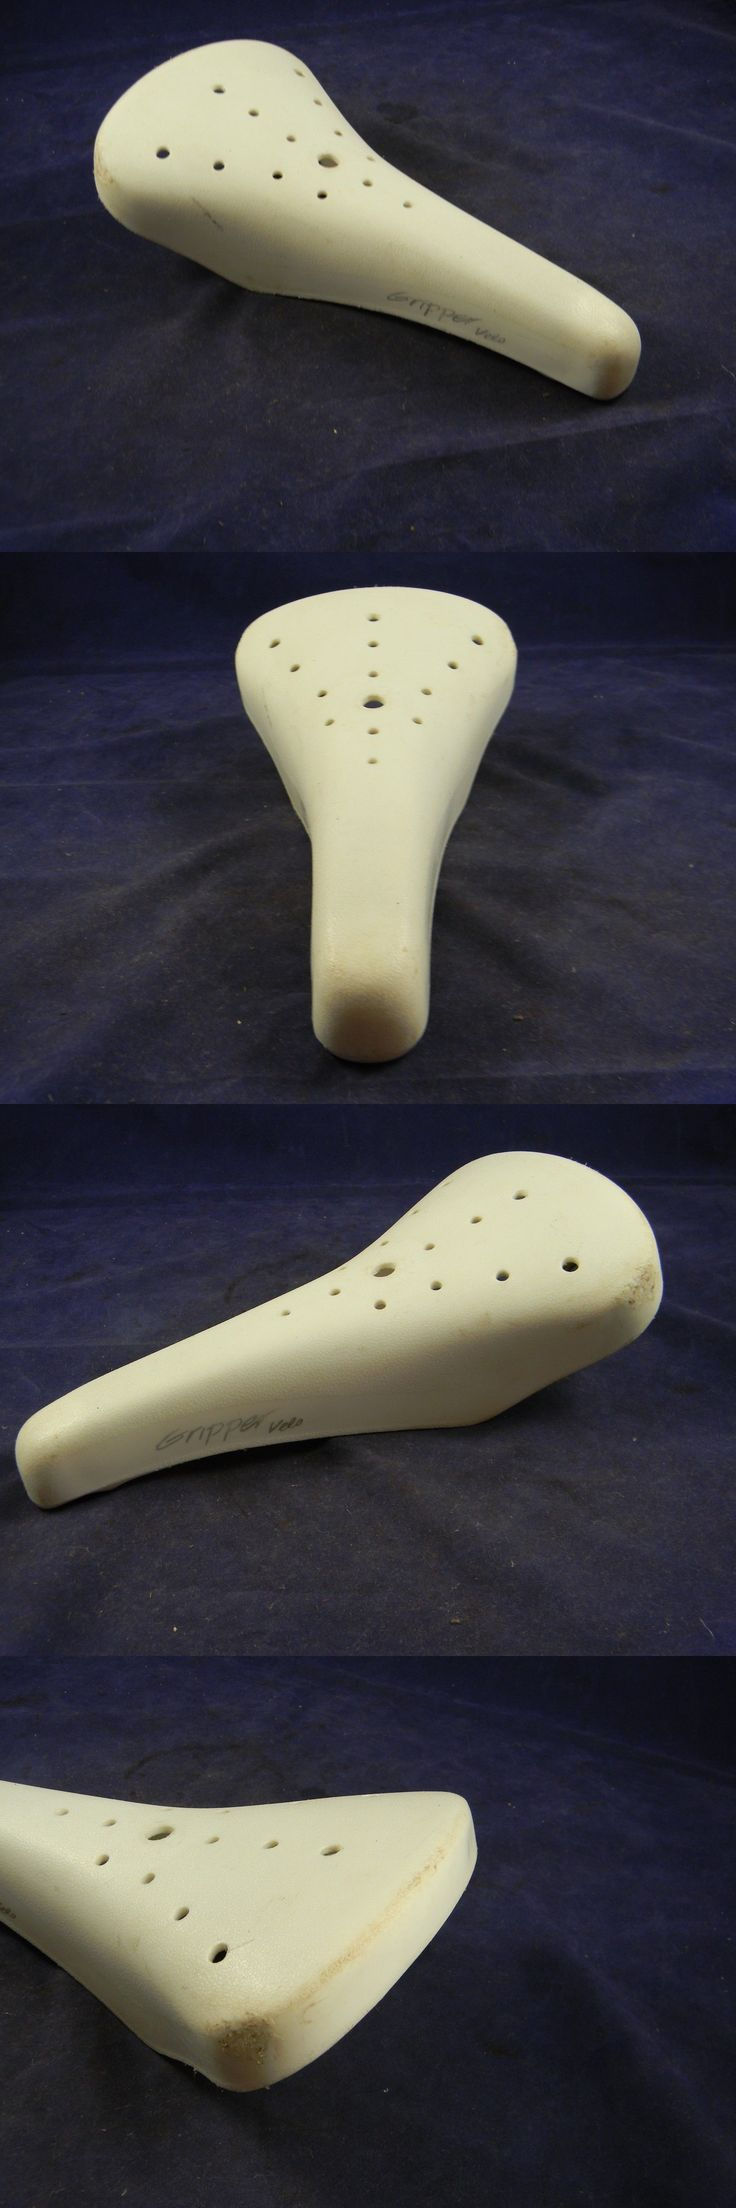 Vintage Bicycle Parts 56197: Vintage Gripper Velo Bmx White Seat Saddle Old School Vl-100 Bike Bicycle Cycle BUY IT NOW ONLY: $65.0